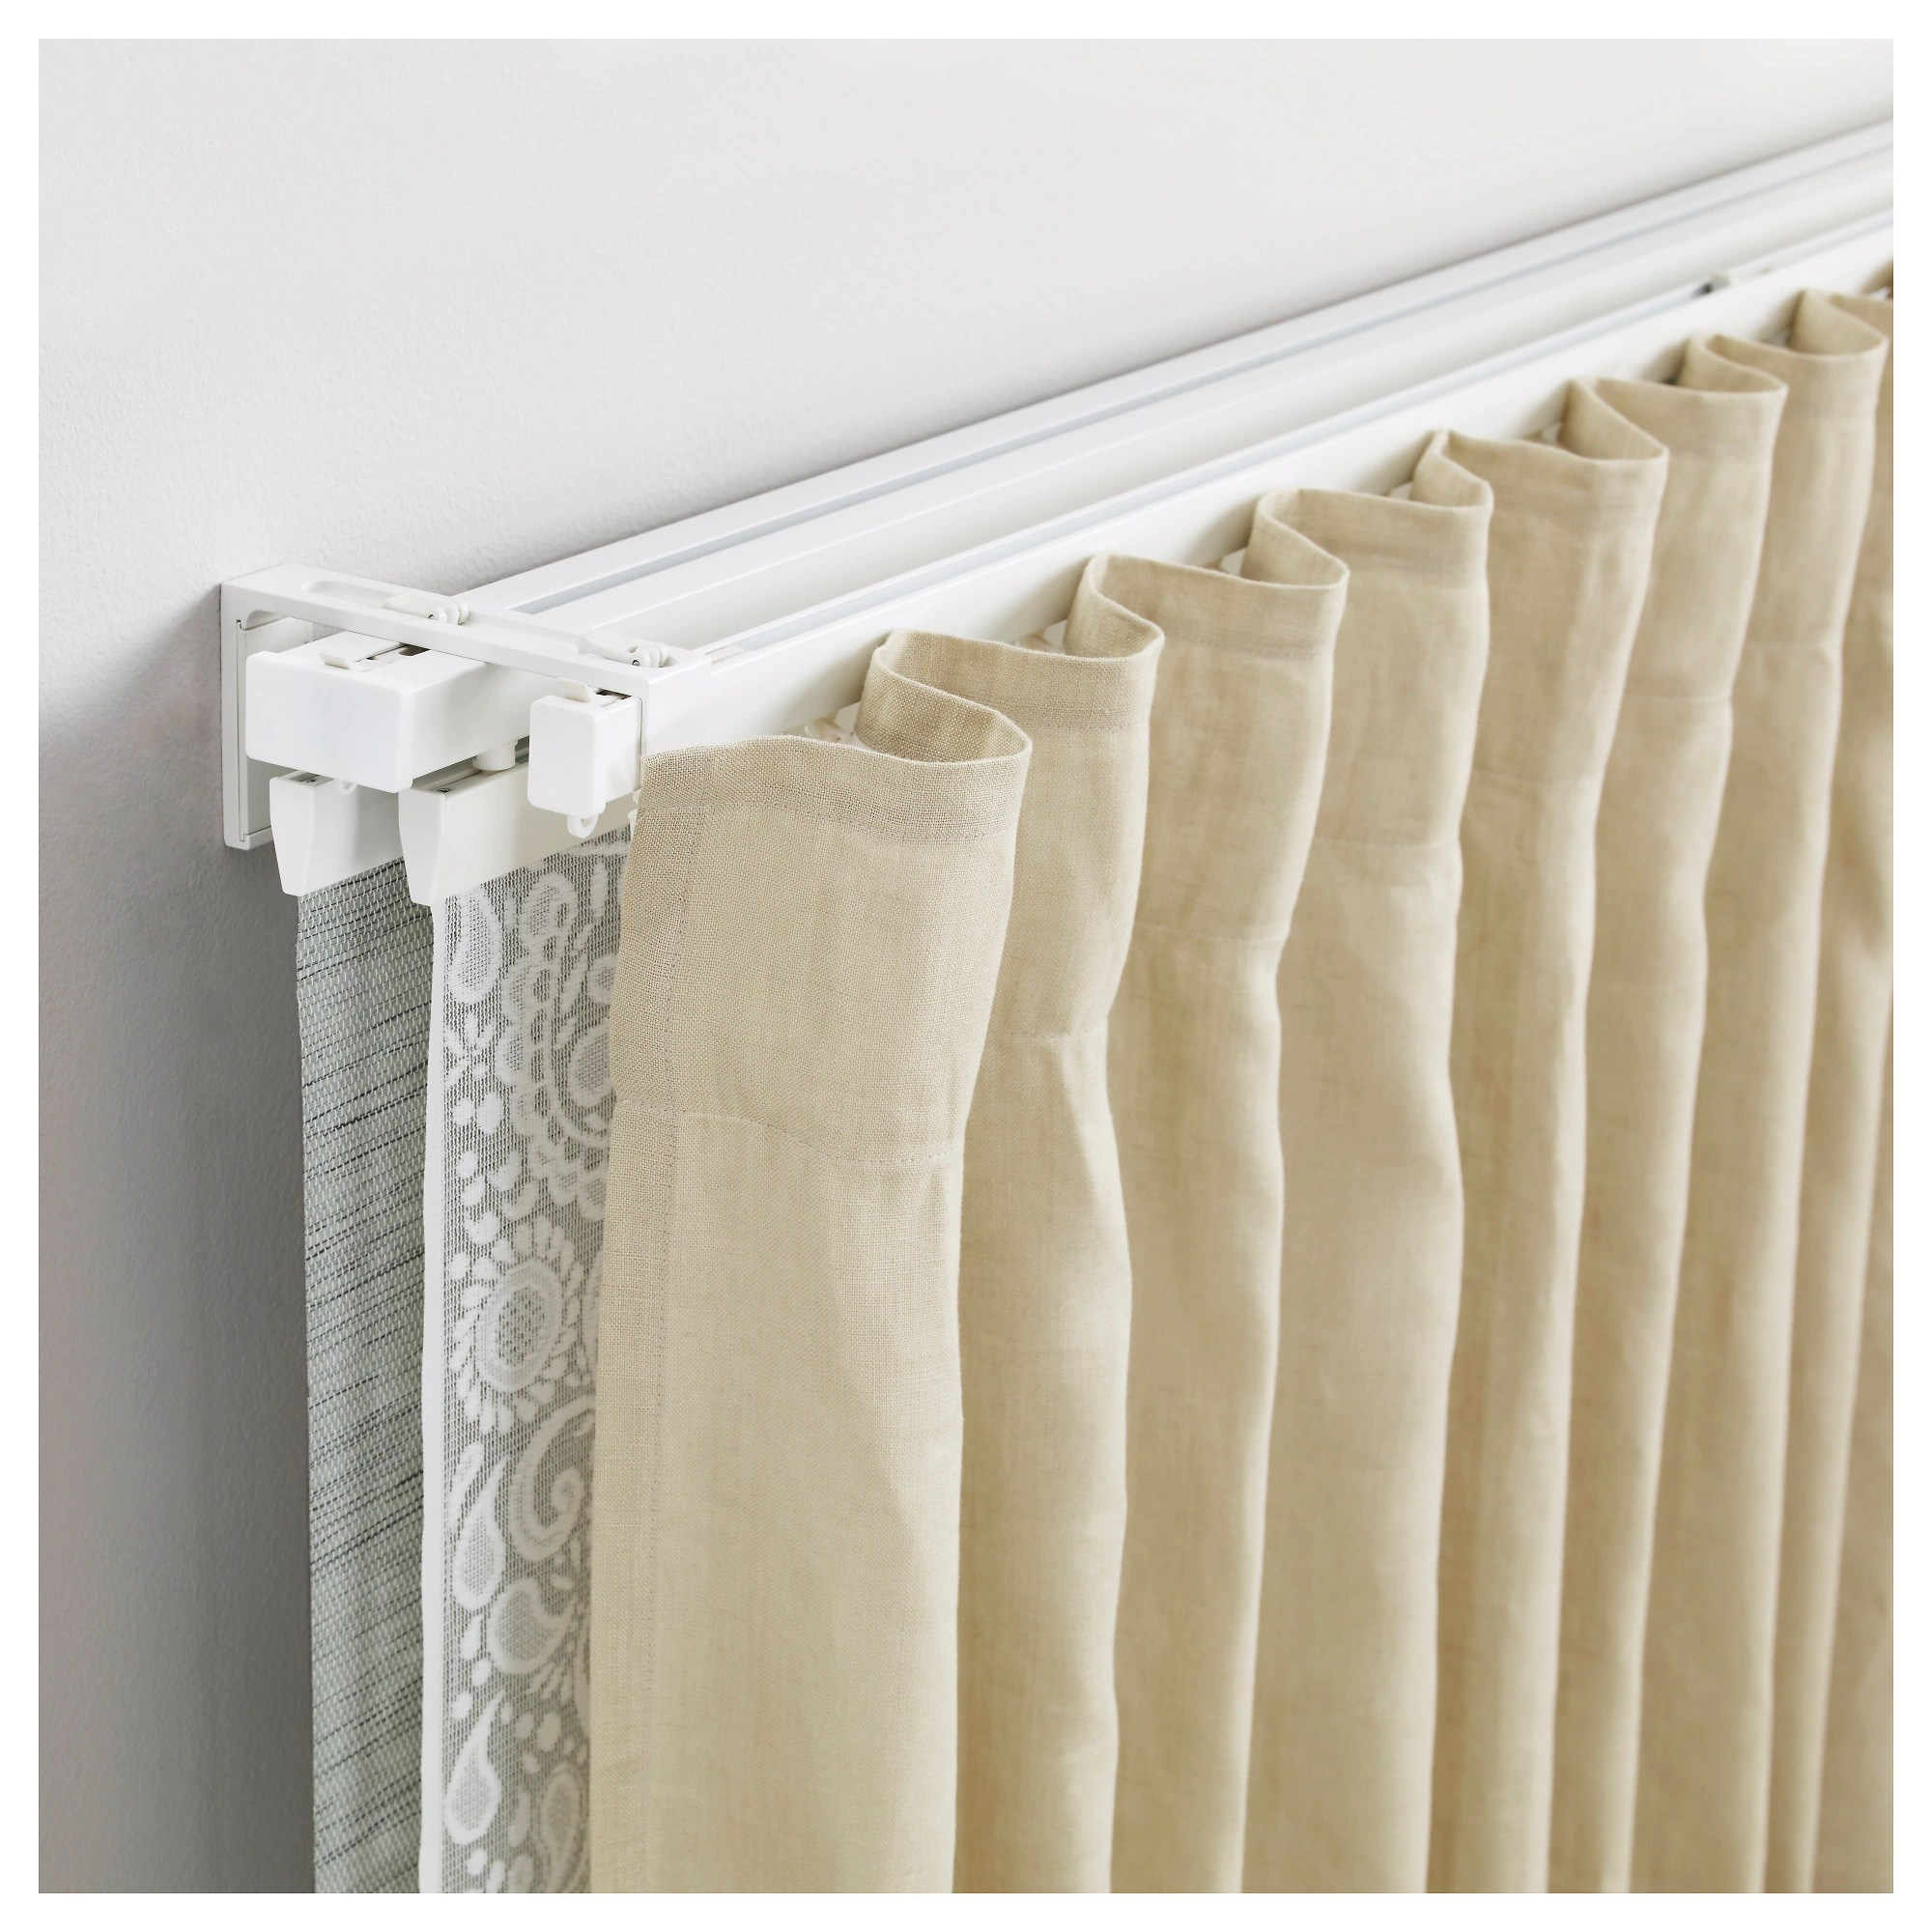 Ikea Perth Curtains Vidga Single And Triple Track Set White